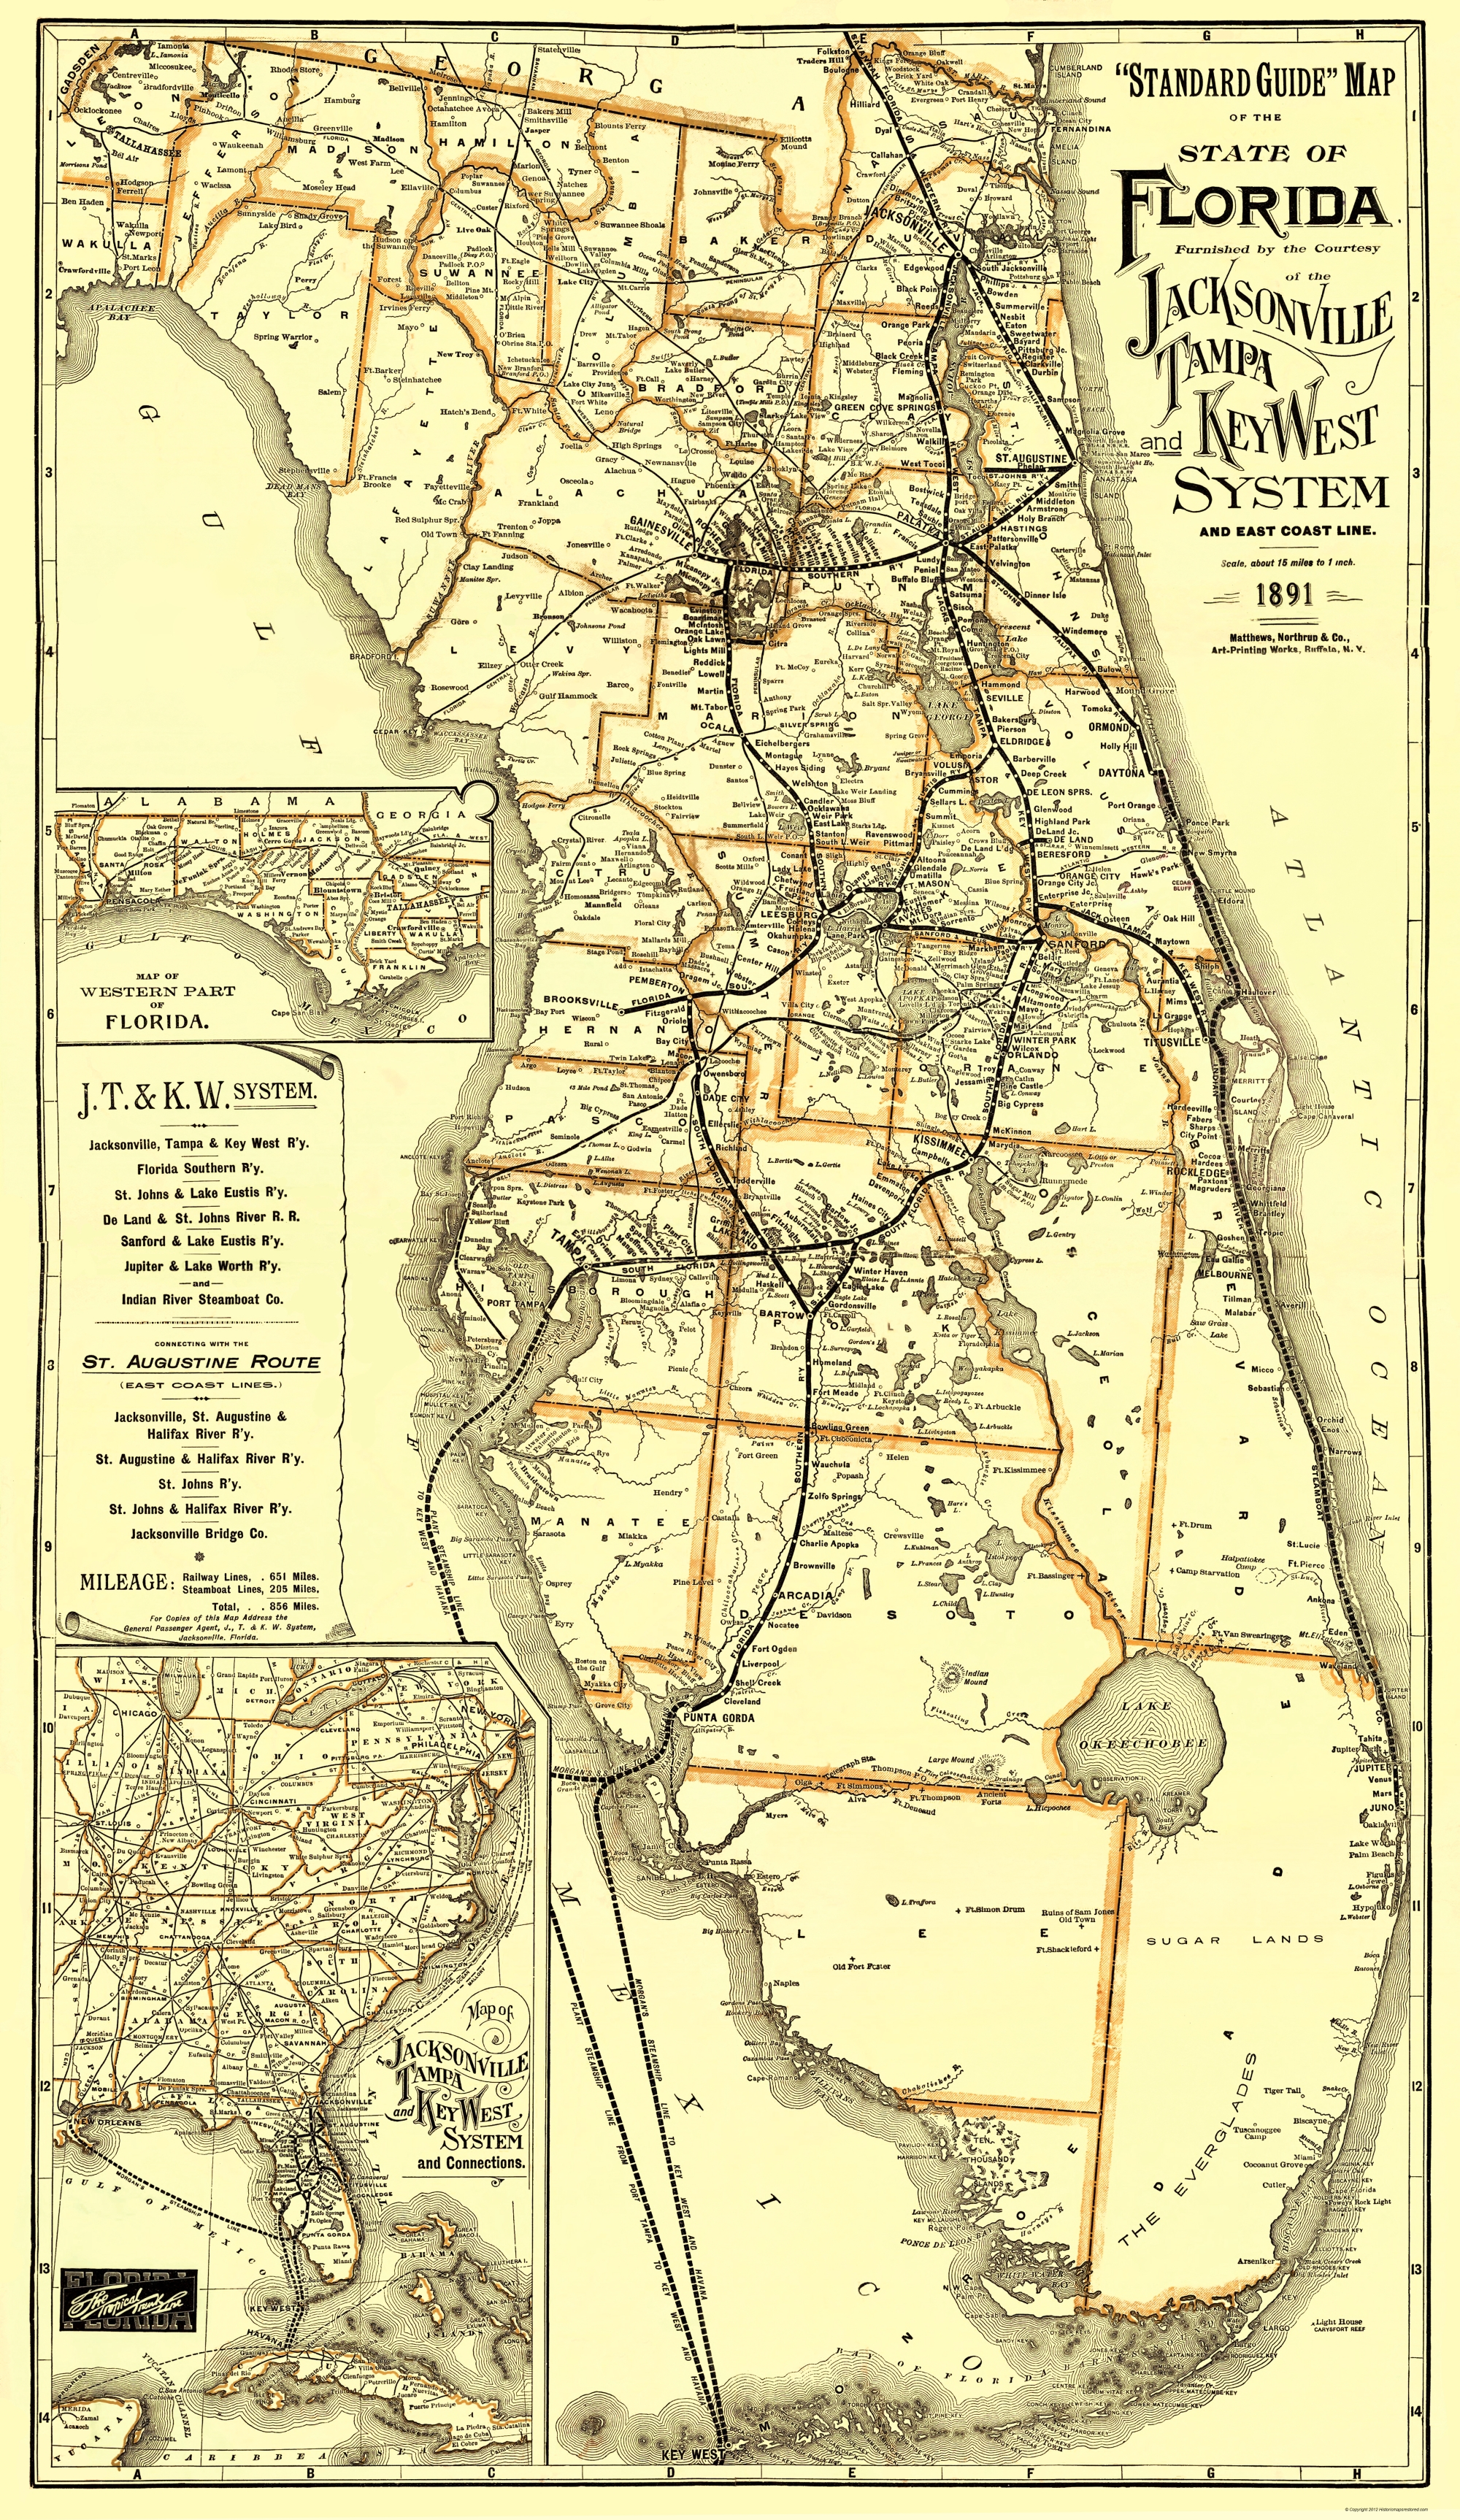 Old Railroad Map Jacksonville Tampa And Key West - Florida map eustis